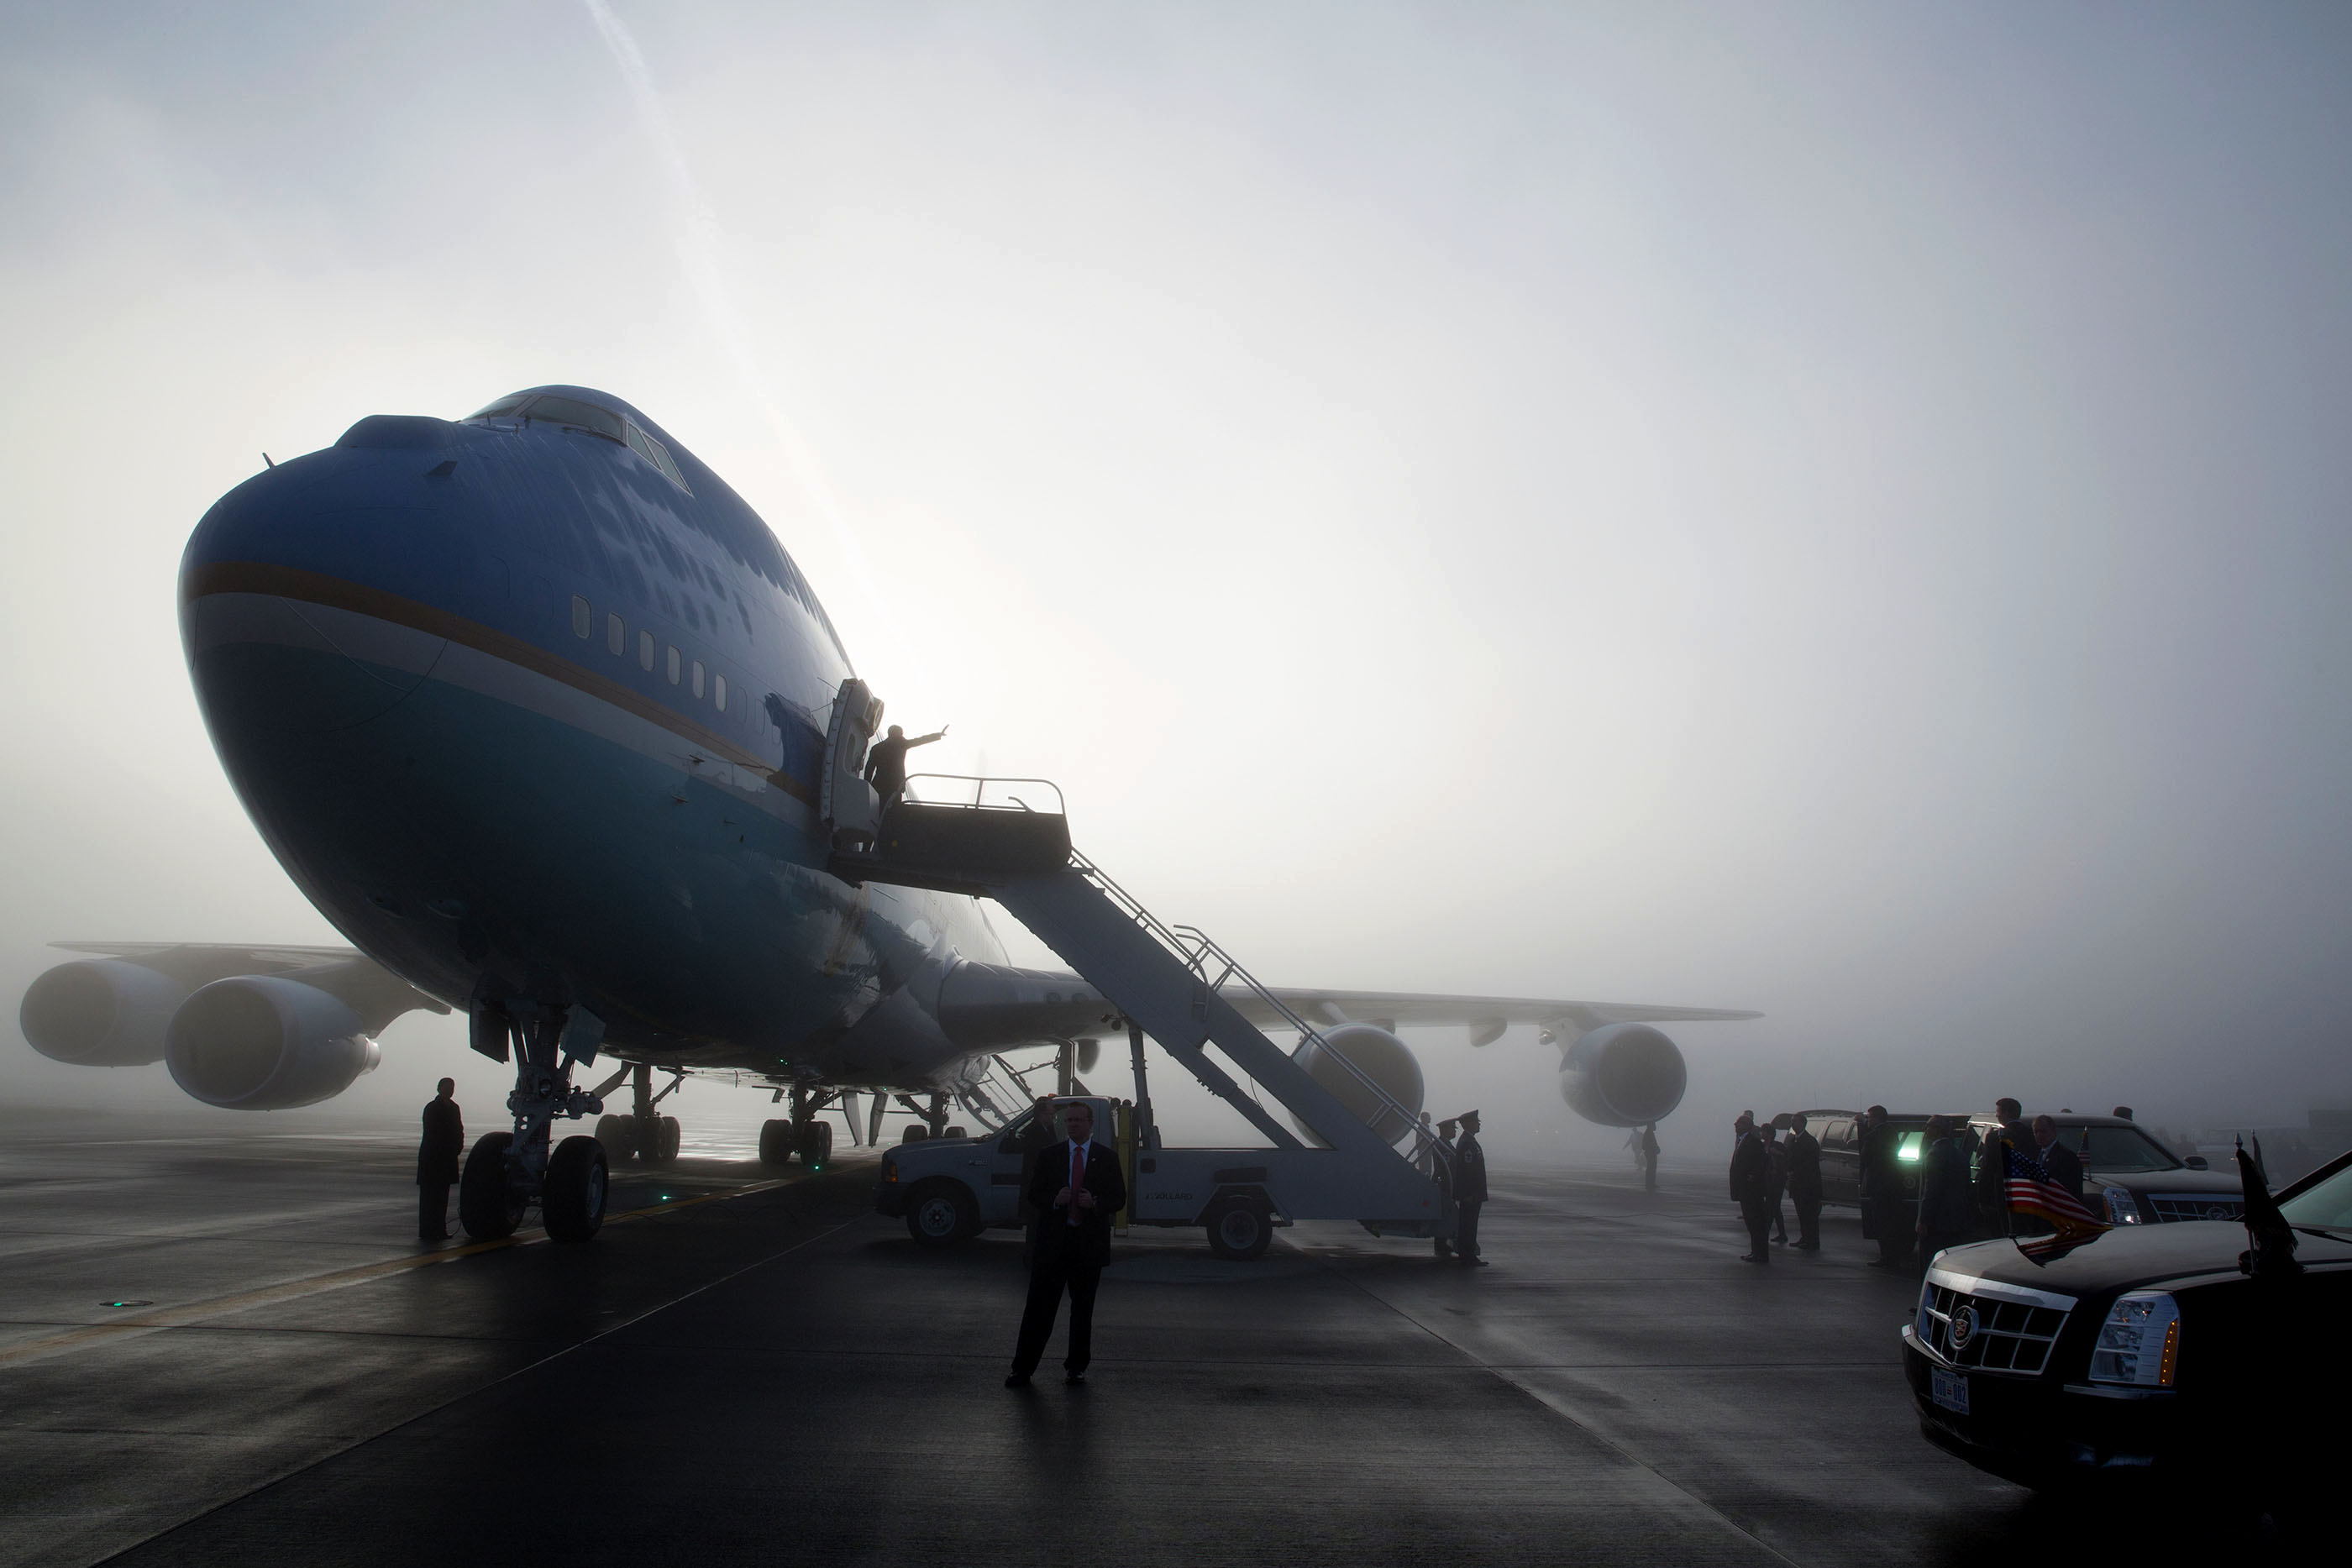 Washington, Nov. 25, 2013. Departing Seattle on a foggy morning. (Official White House Photo by Pete Souza)